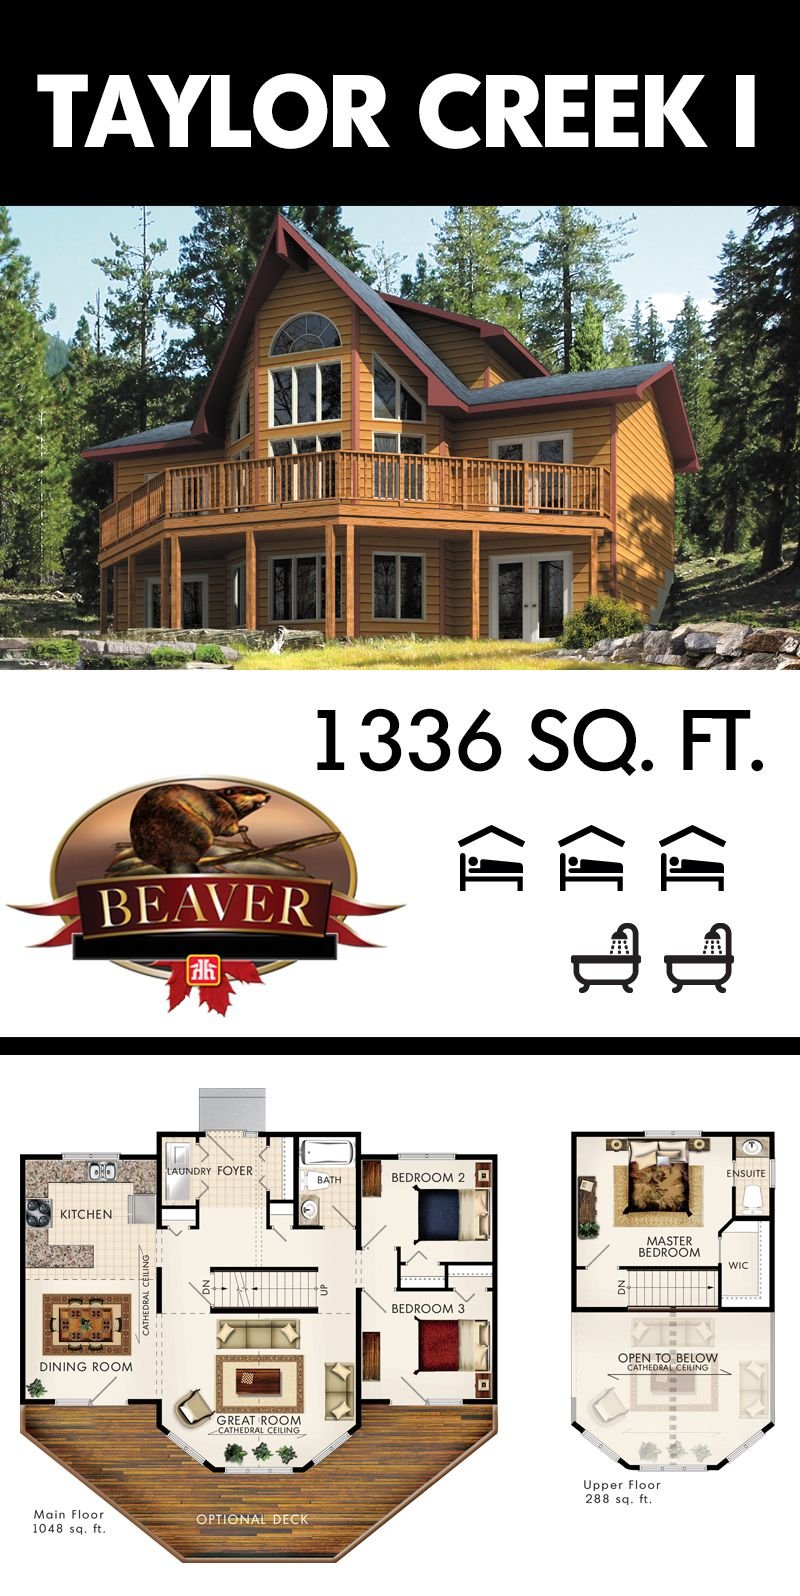 Taylor Creek I House Plans New House Plans Beaver Homes And Cottages